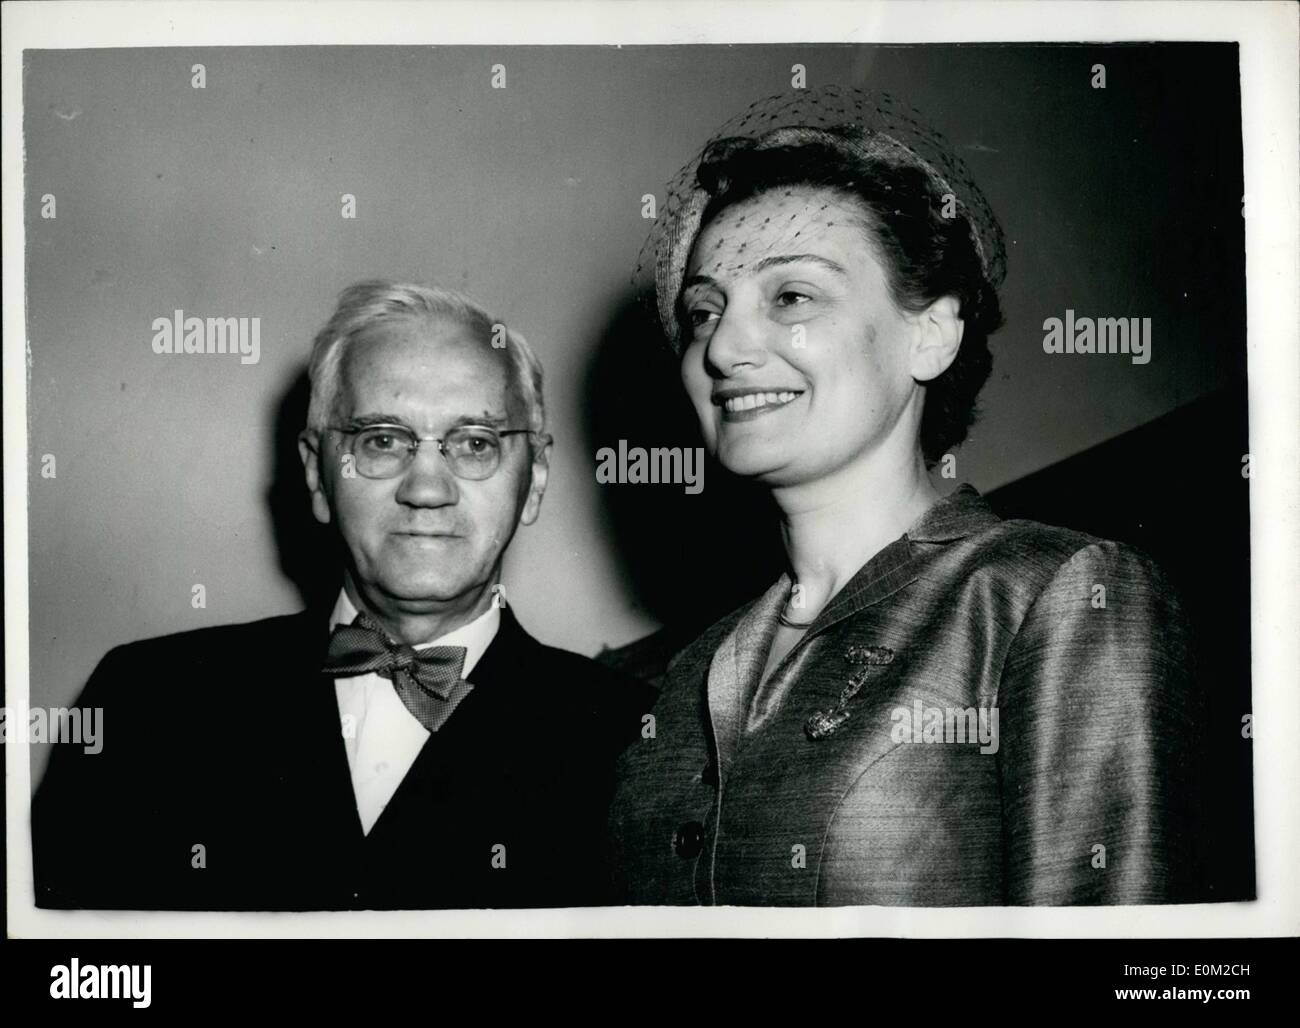 Apr. 04, 1953 - Sir Alexander Fleming weds.: Sir Alexander Fleming, the discoverer of penicillin, who is 71, was - Stock Image